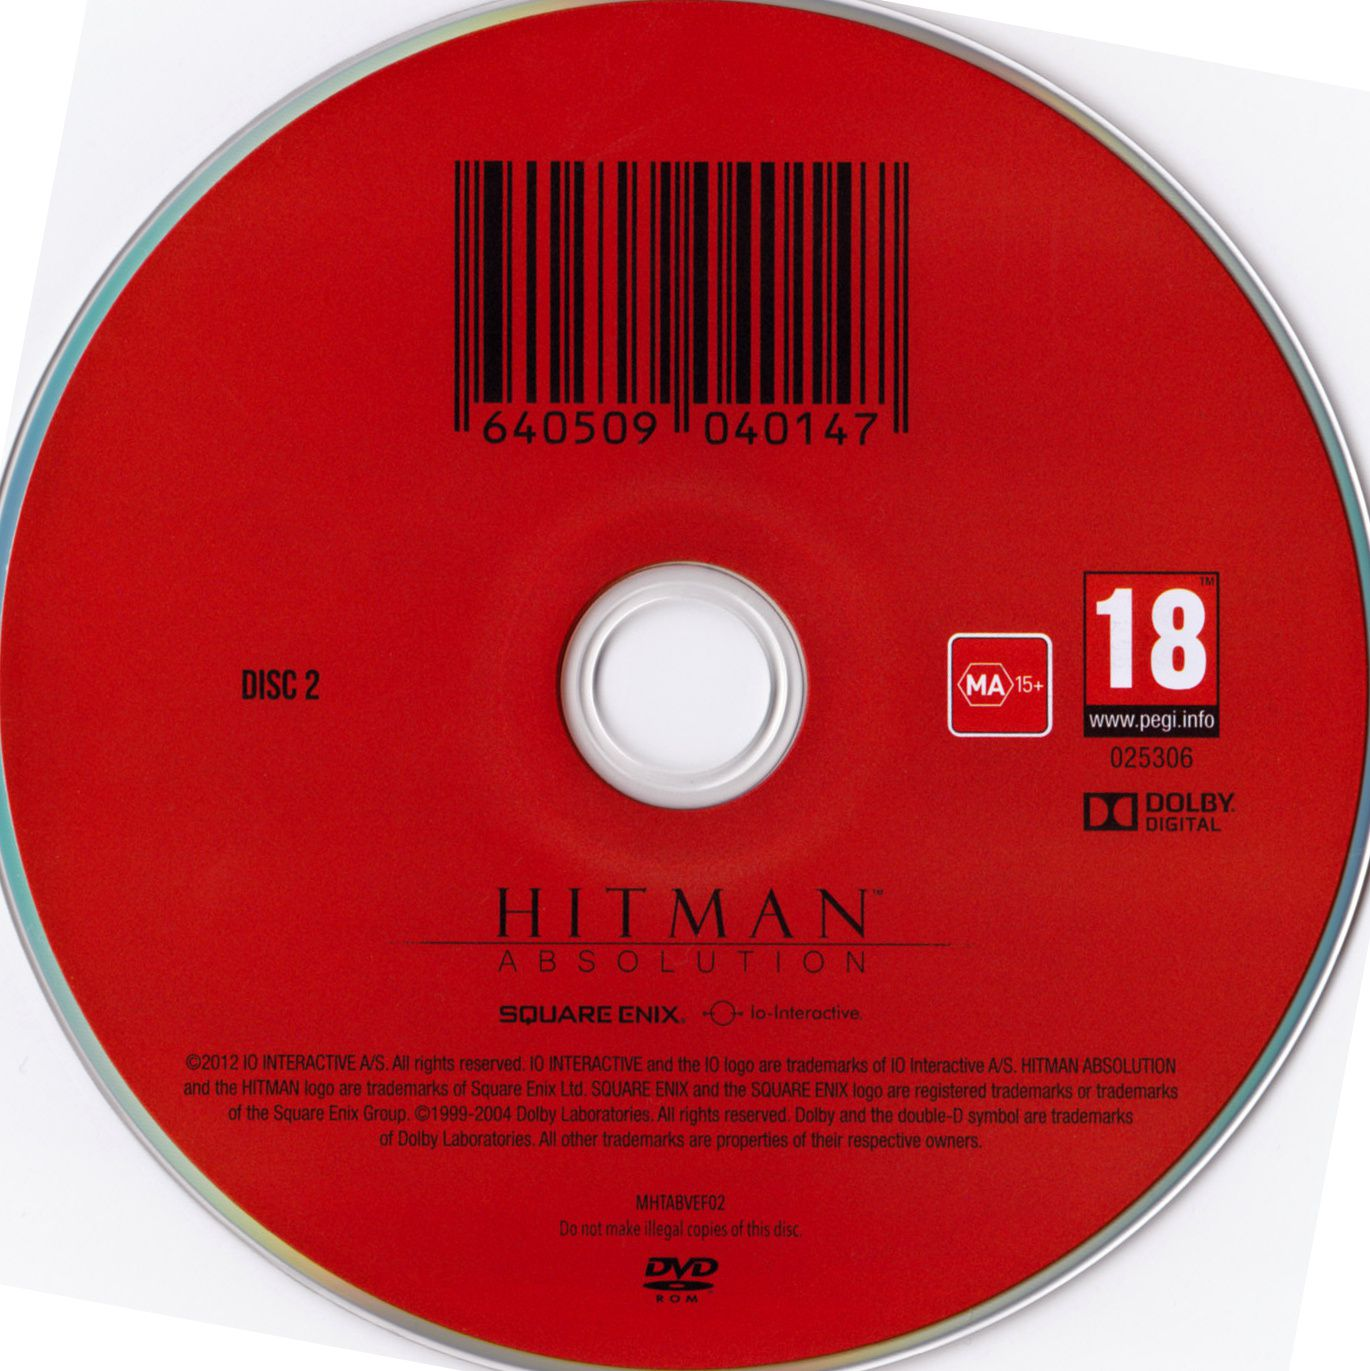 Label Hitman Absolution Disc 2 PC